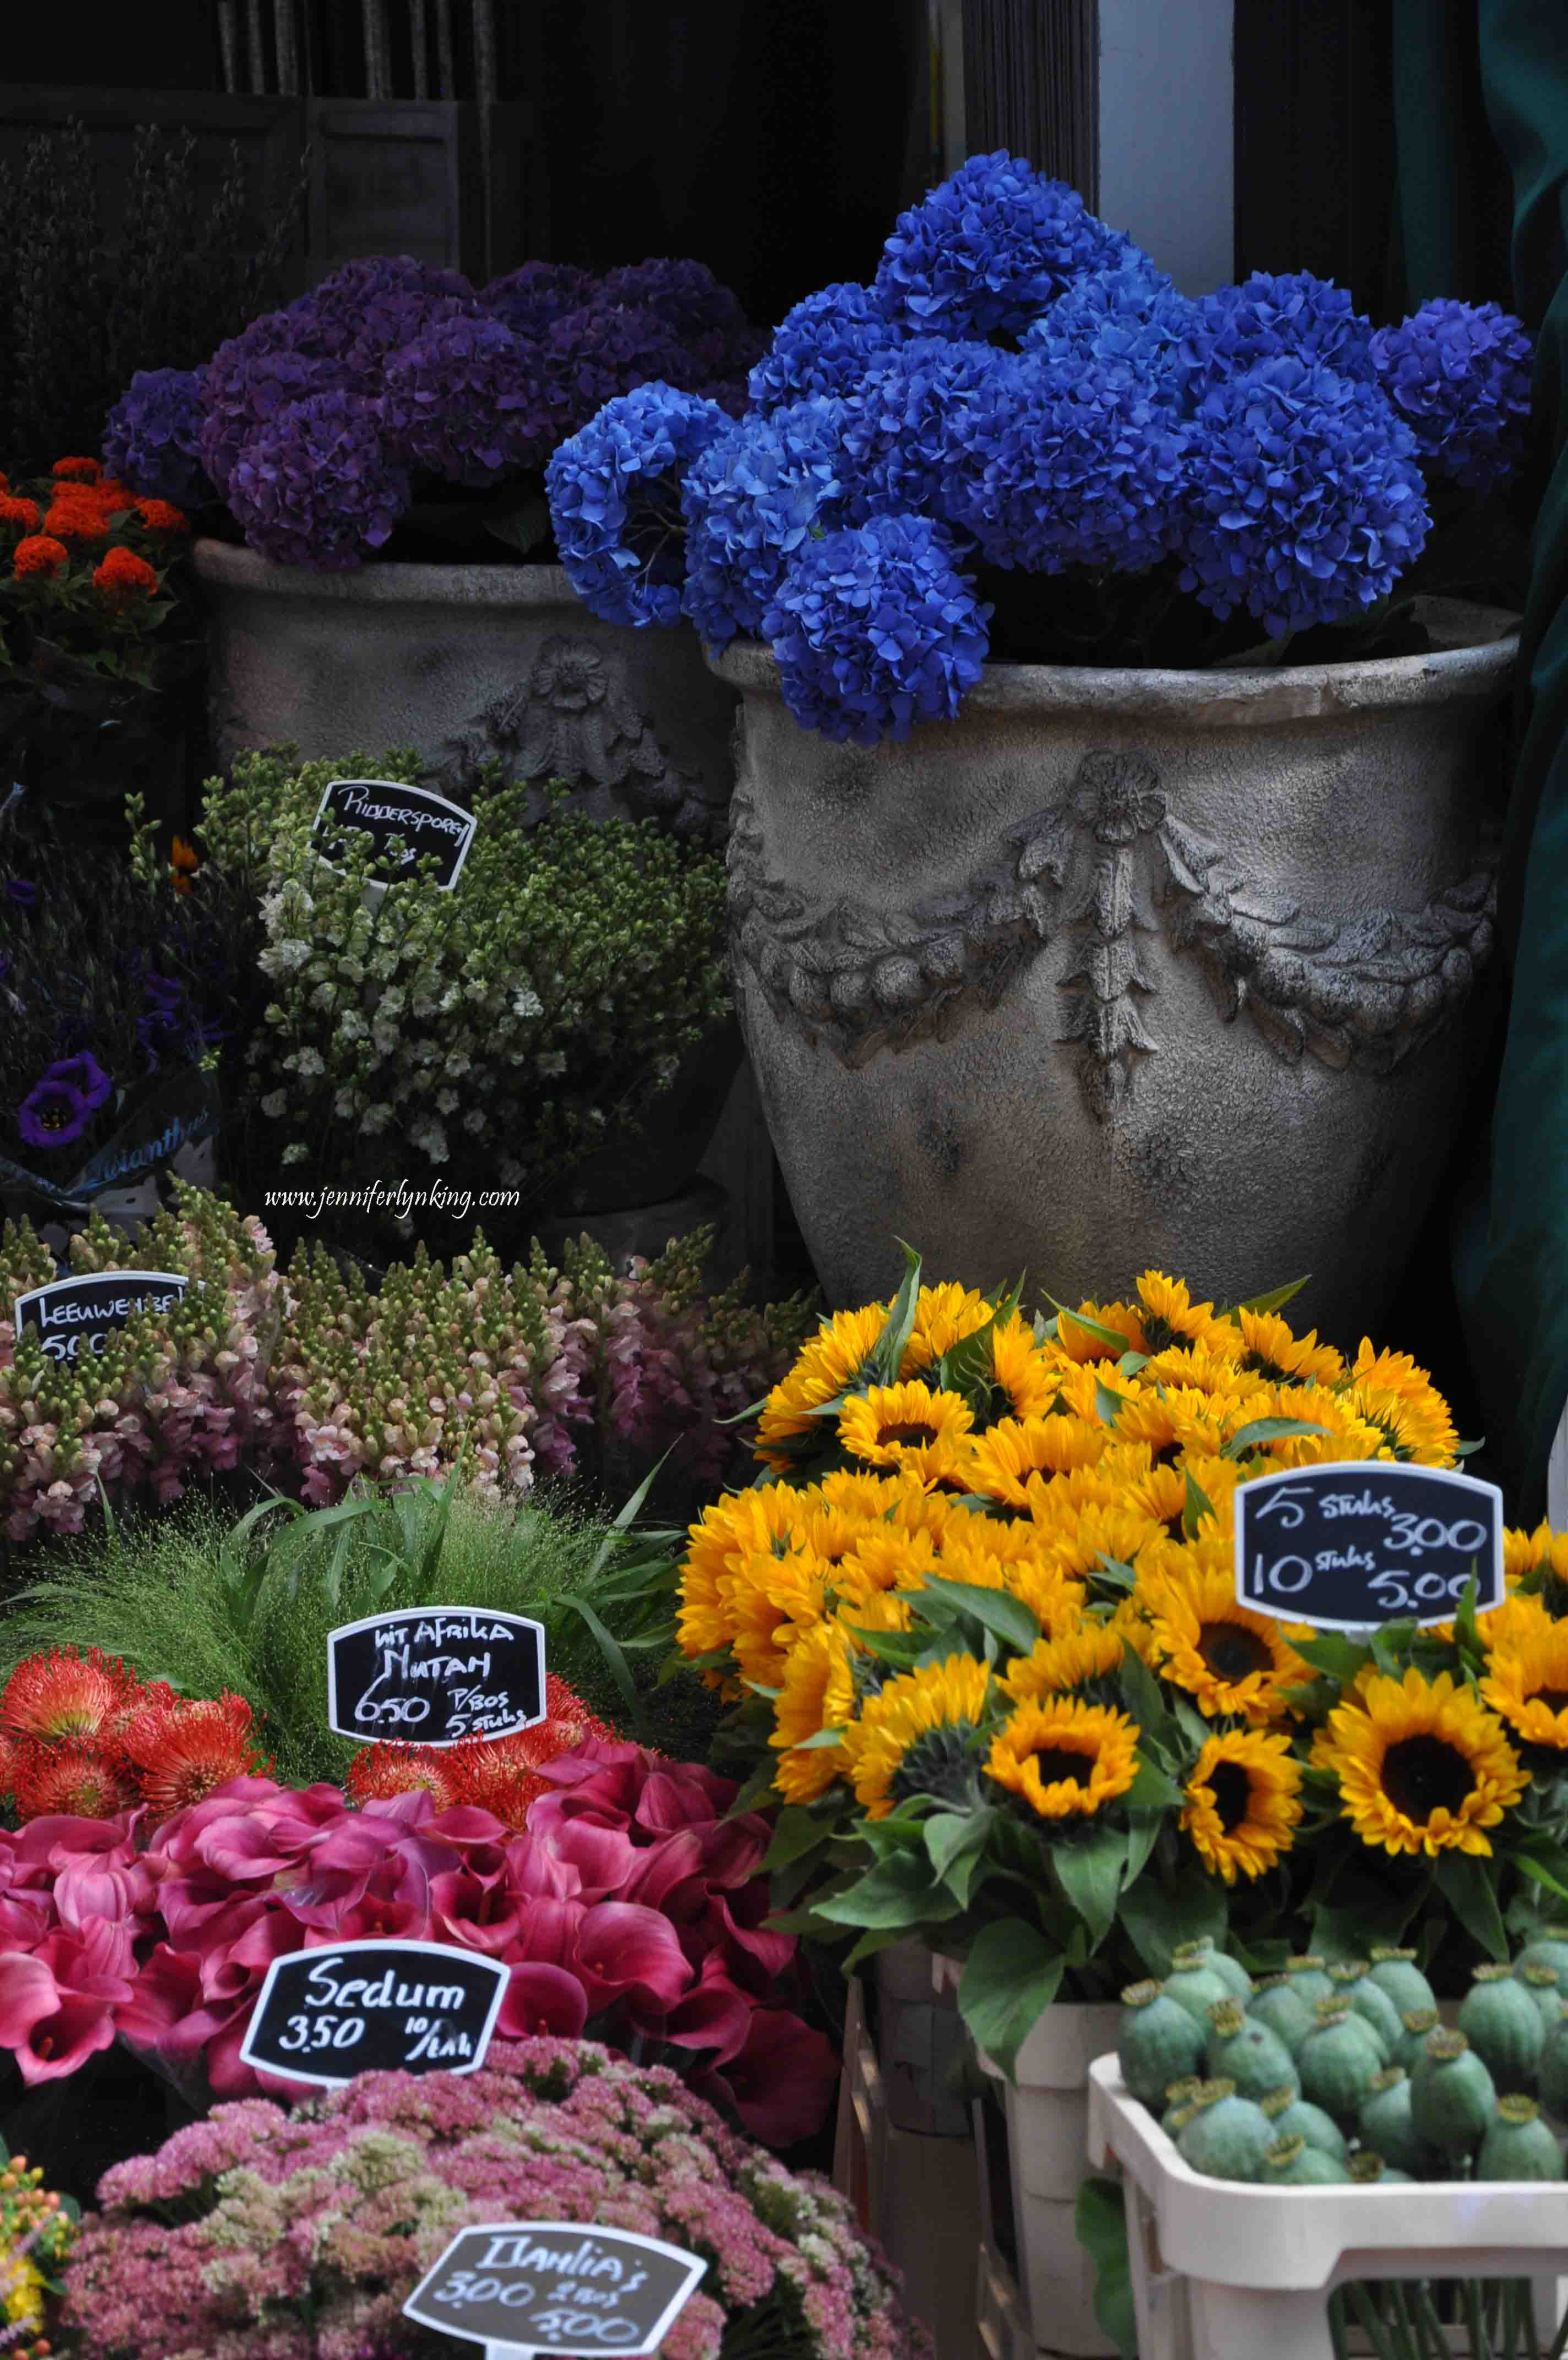 The Flower Markets, Amsterdam